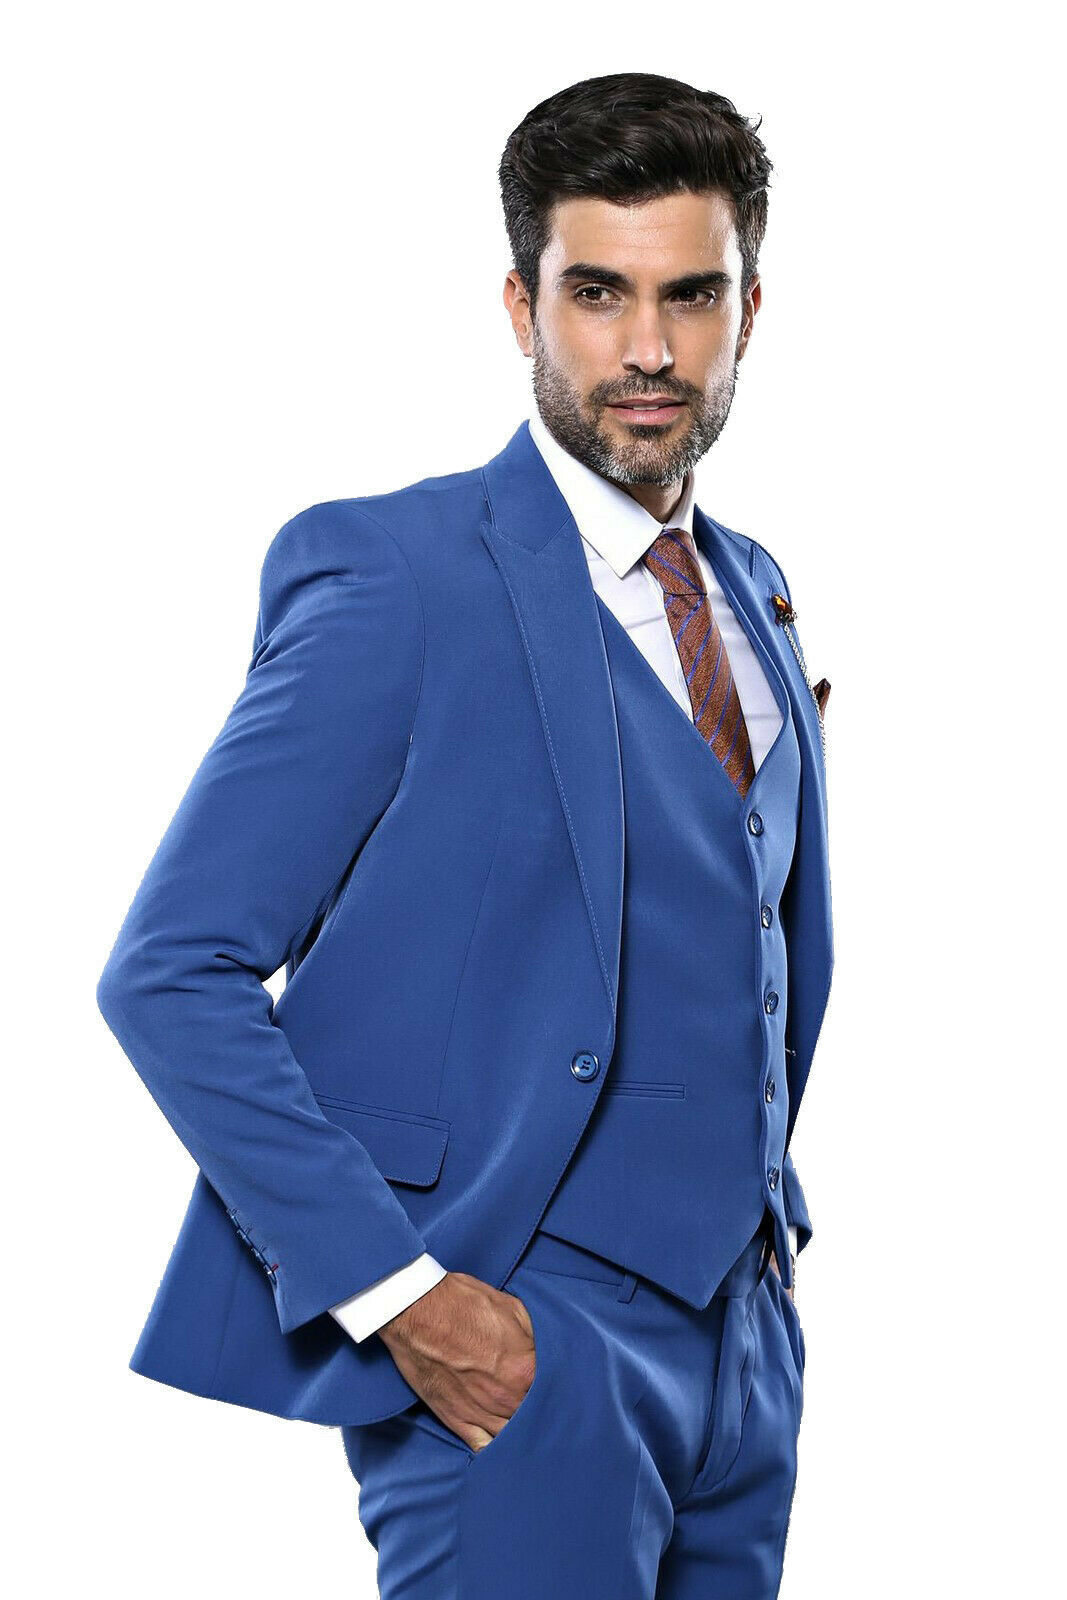 Primary image for Men 3 Piece Suit WESSI by J.VALINTIN Extra Slim Fit JV3 Light Blue One Button